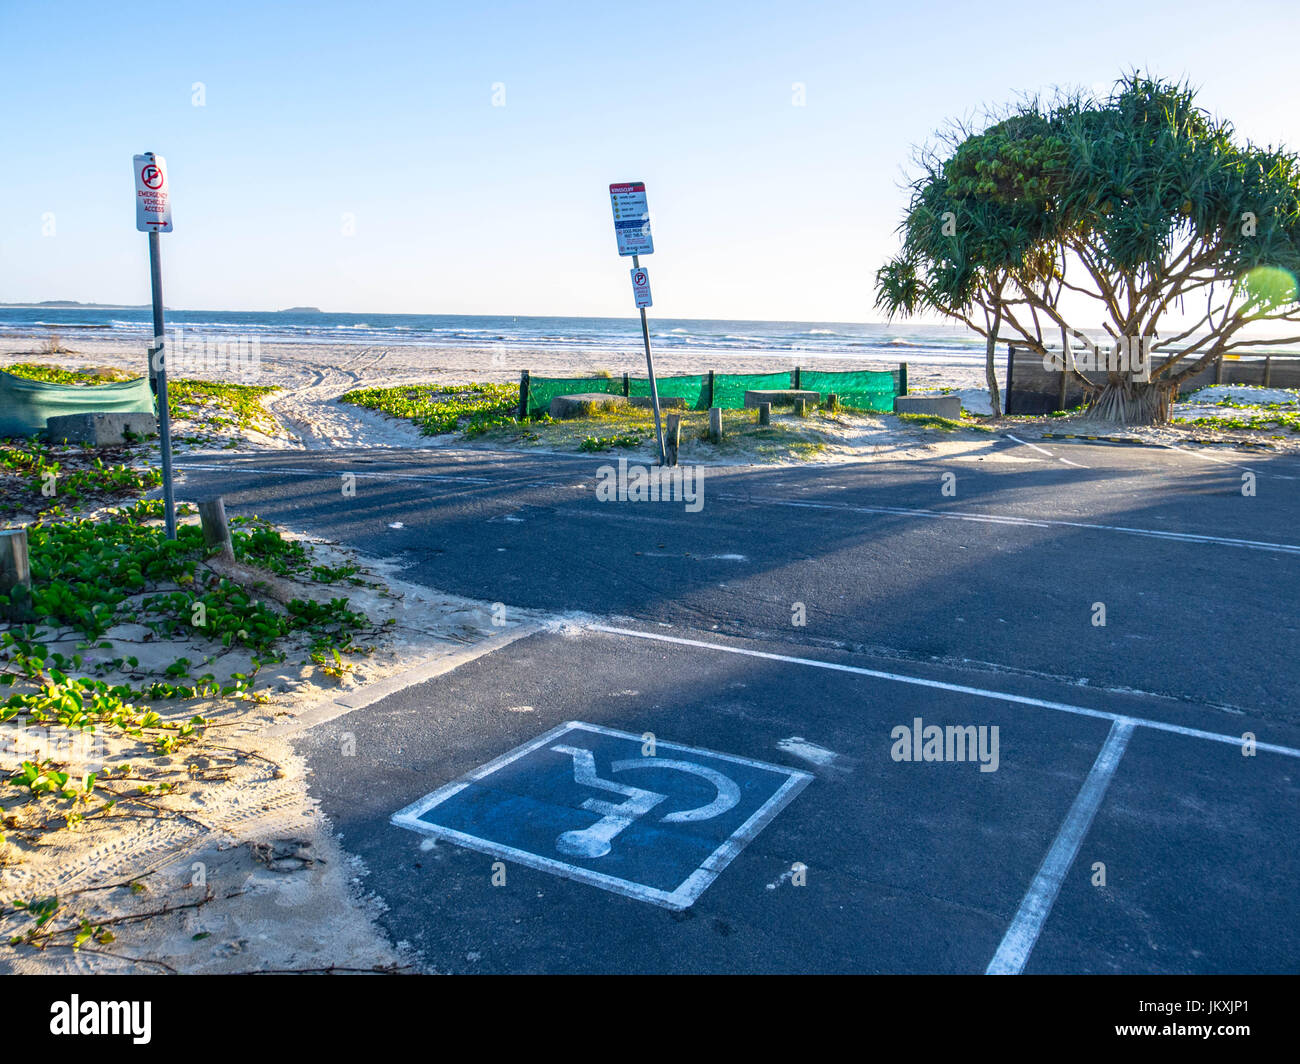 Disabled Carpark Beside Beach enabling Easy Access and Freedom to Enjoy Life - Stock Image